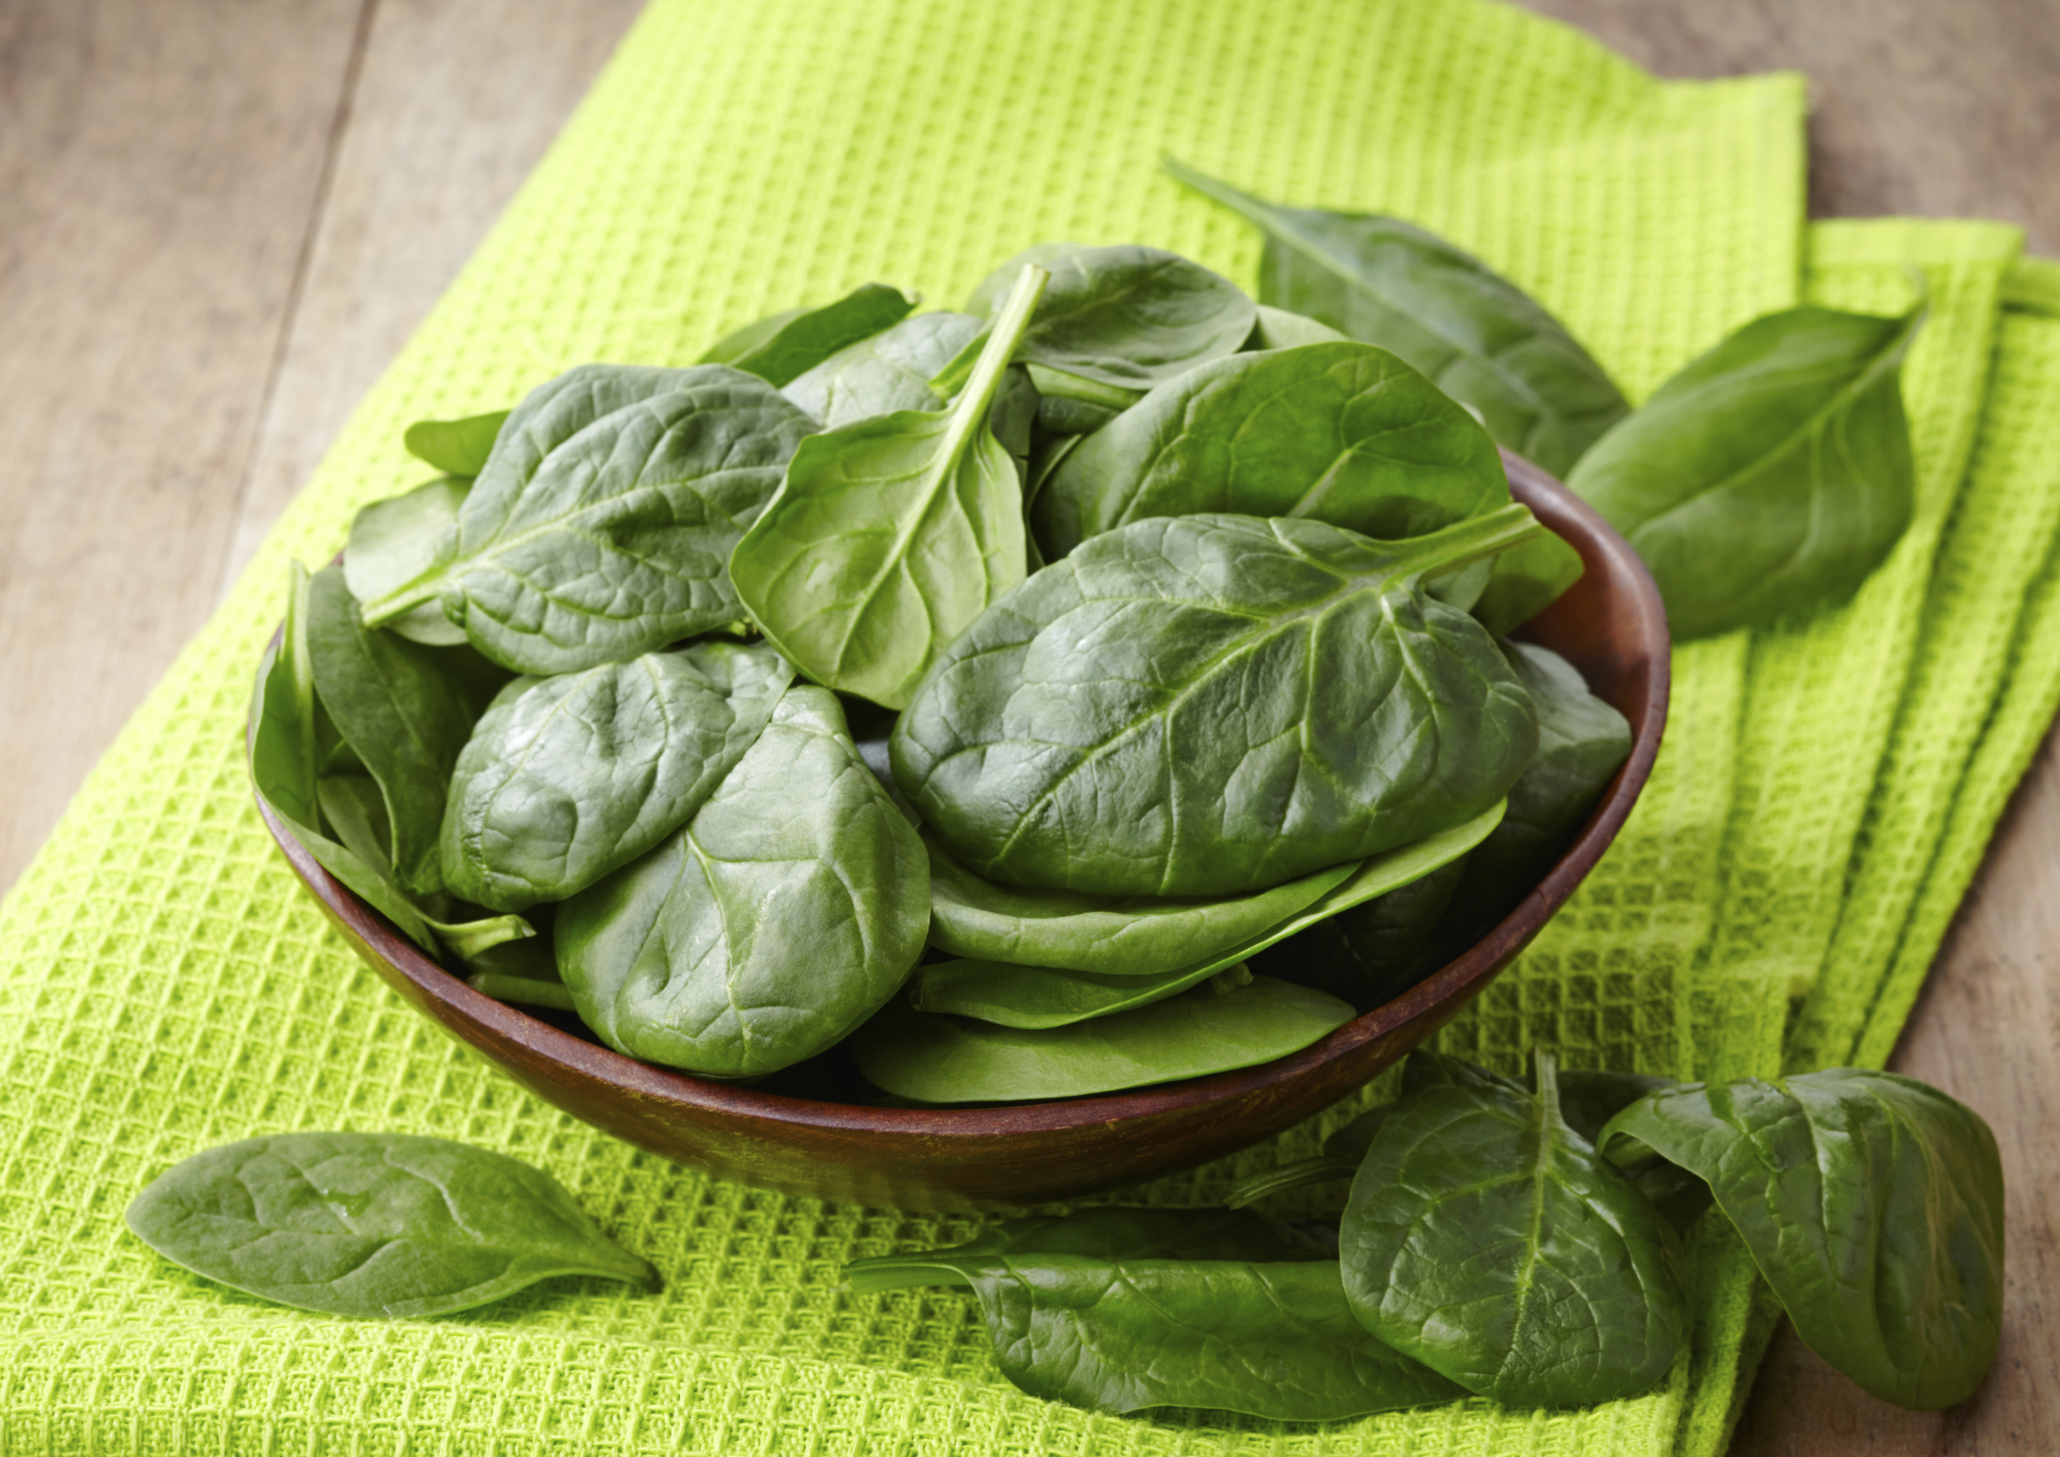 Discussion on this topic: 15 Best Benefits Of Water Spinach For , 15-best-benefits-of-water-spinach-for/